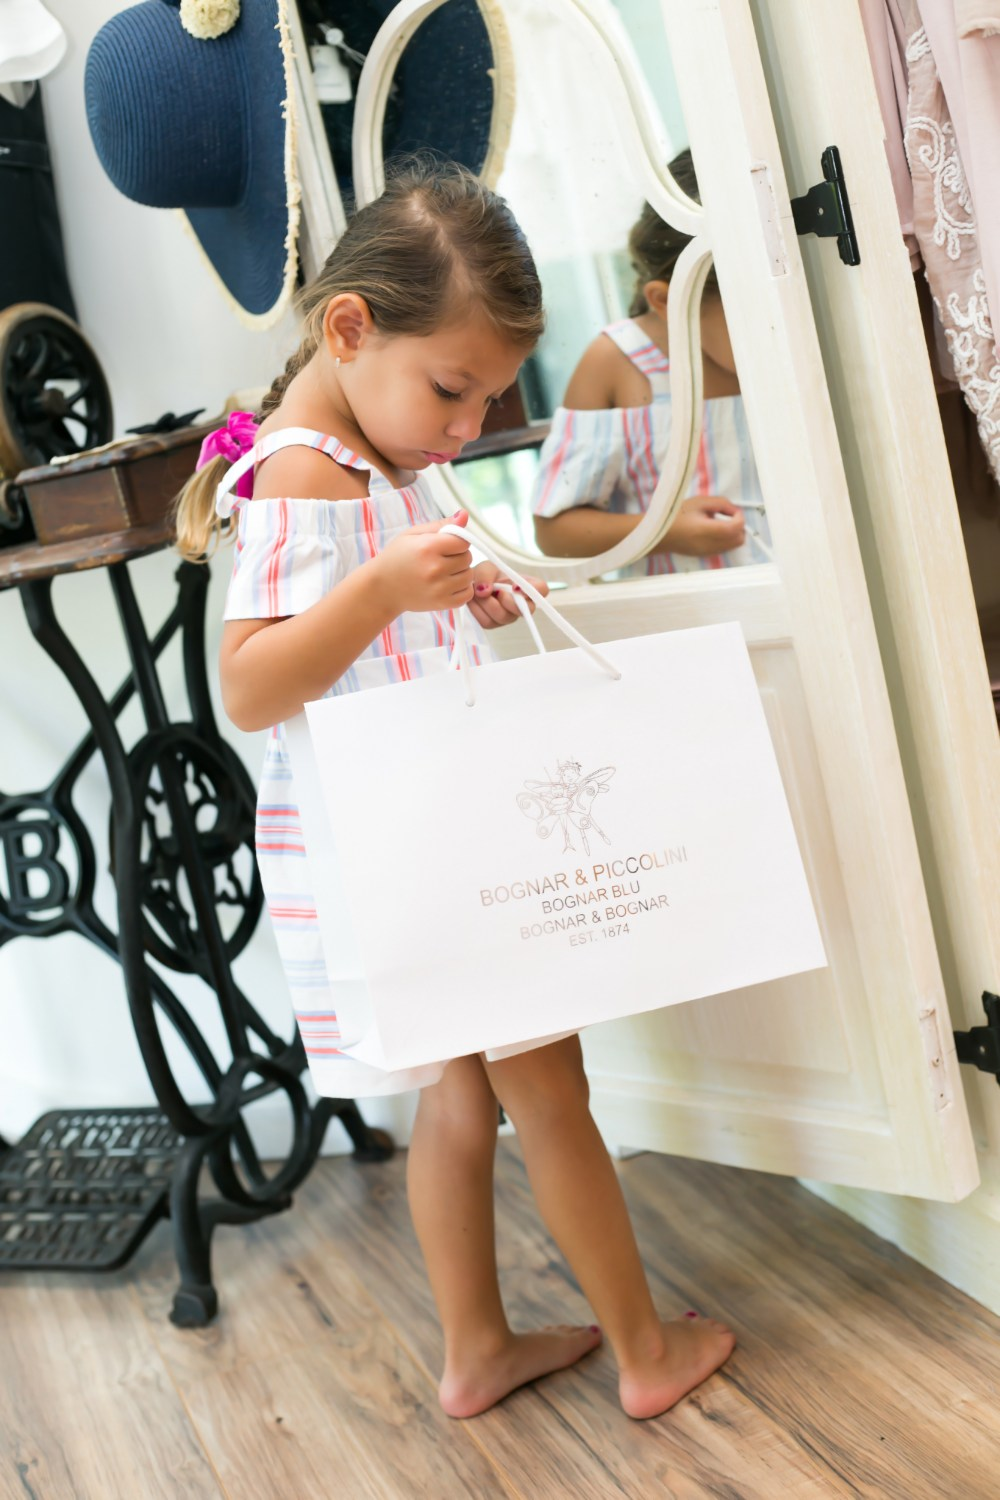 Bognar and Peccolini Palm Beach, children's shopping Palm Beach